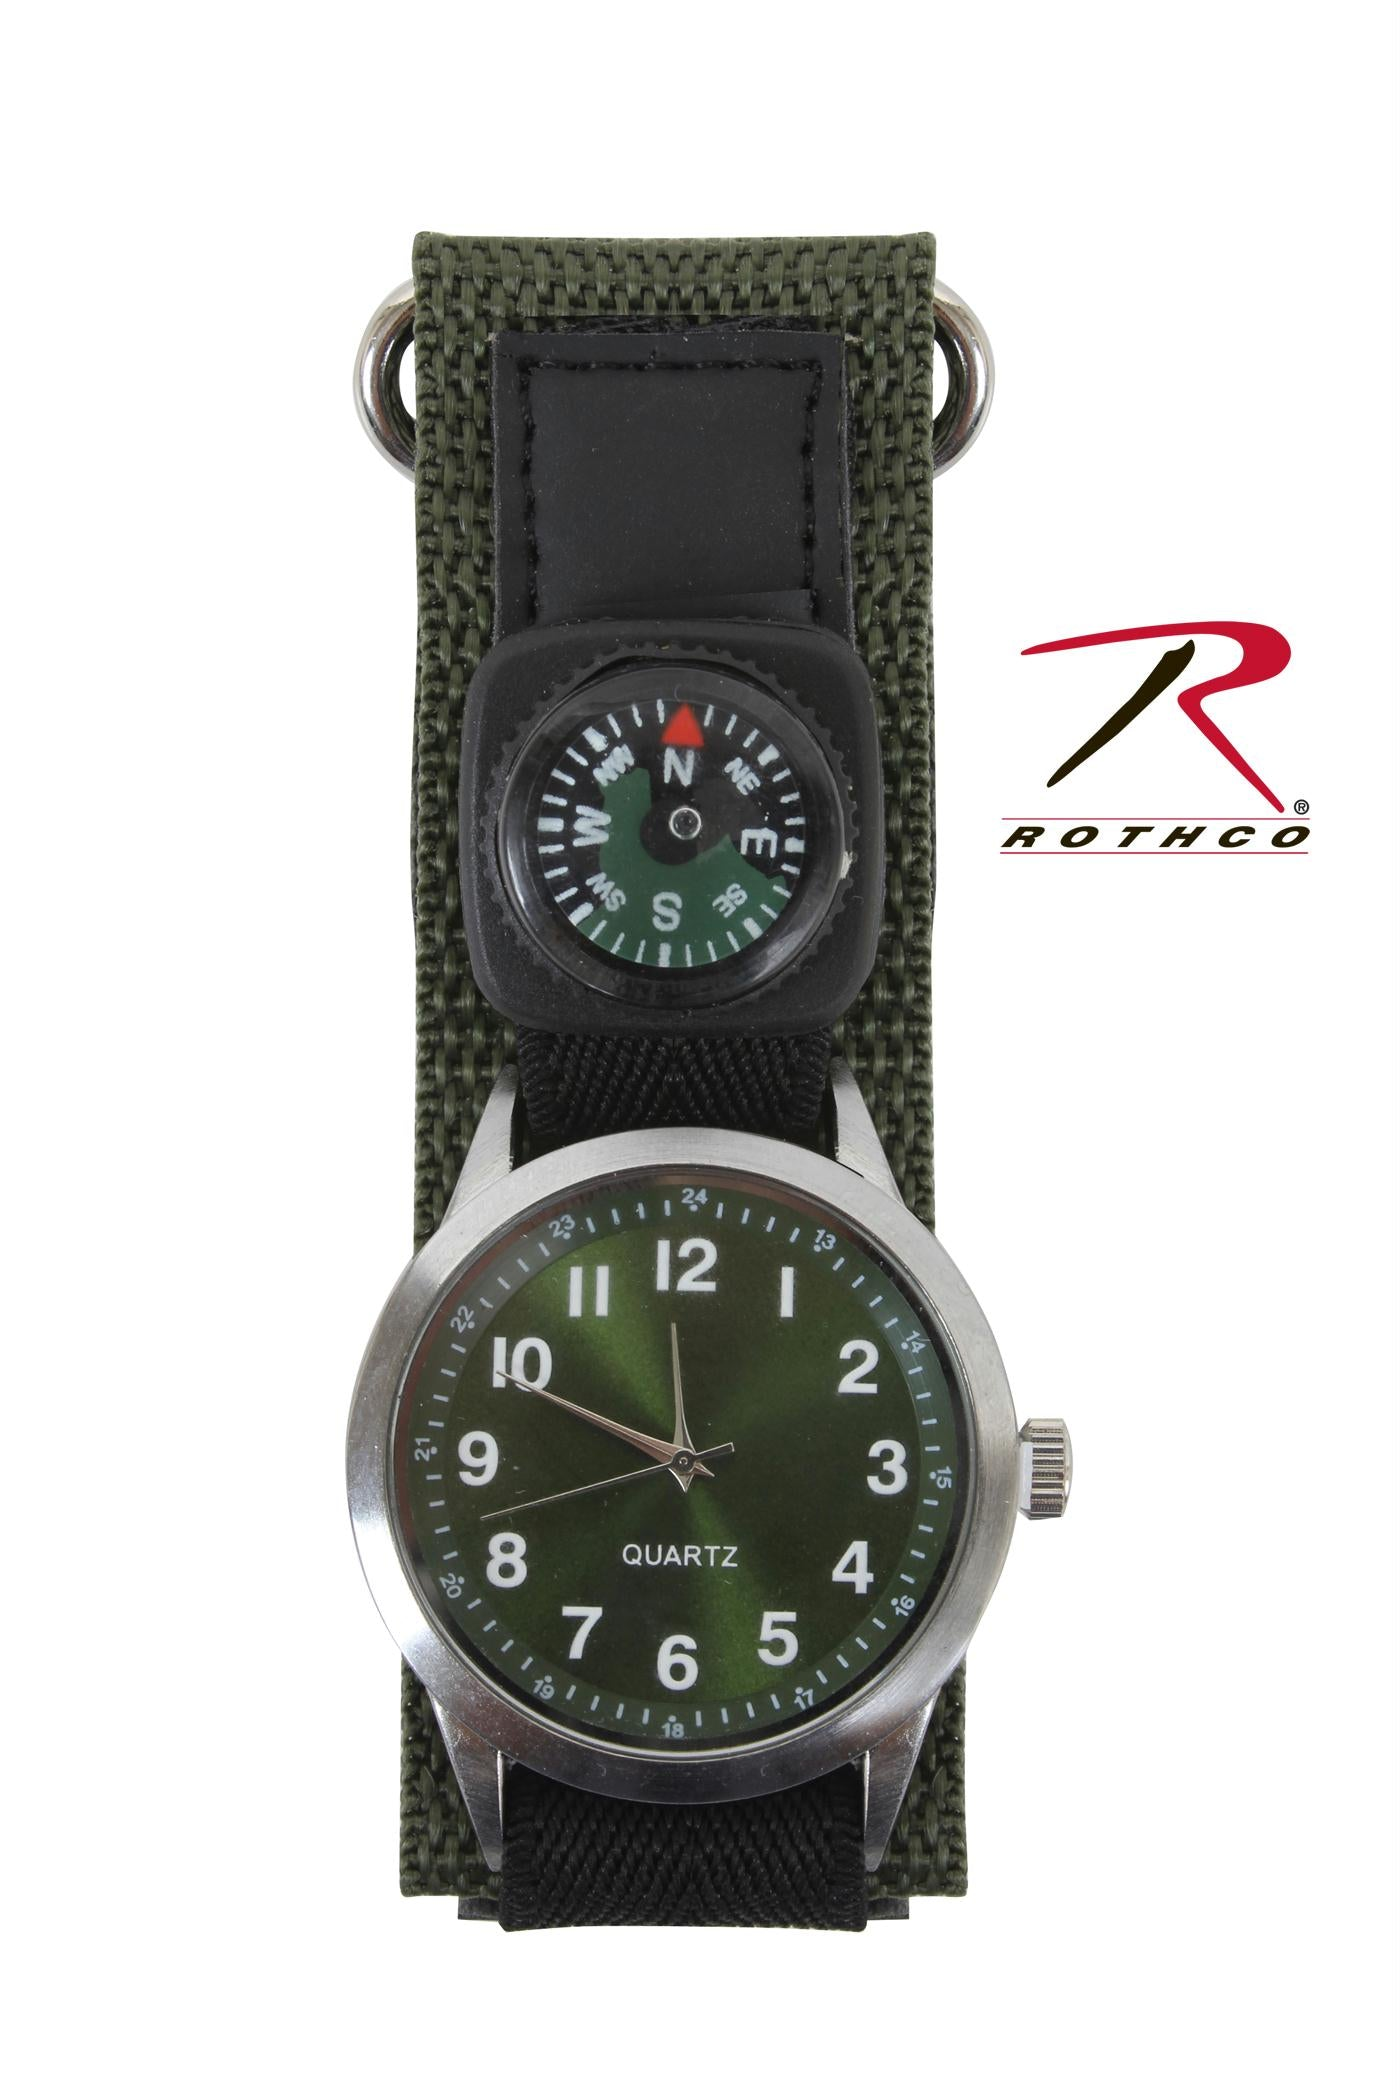 Rothco Watch With Compass-Olive Drab - One Size